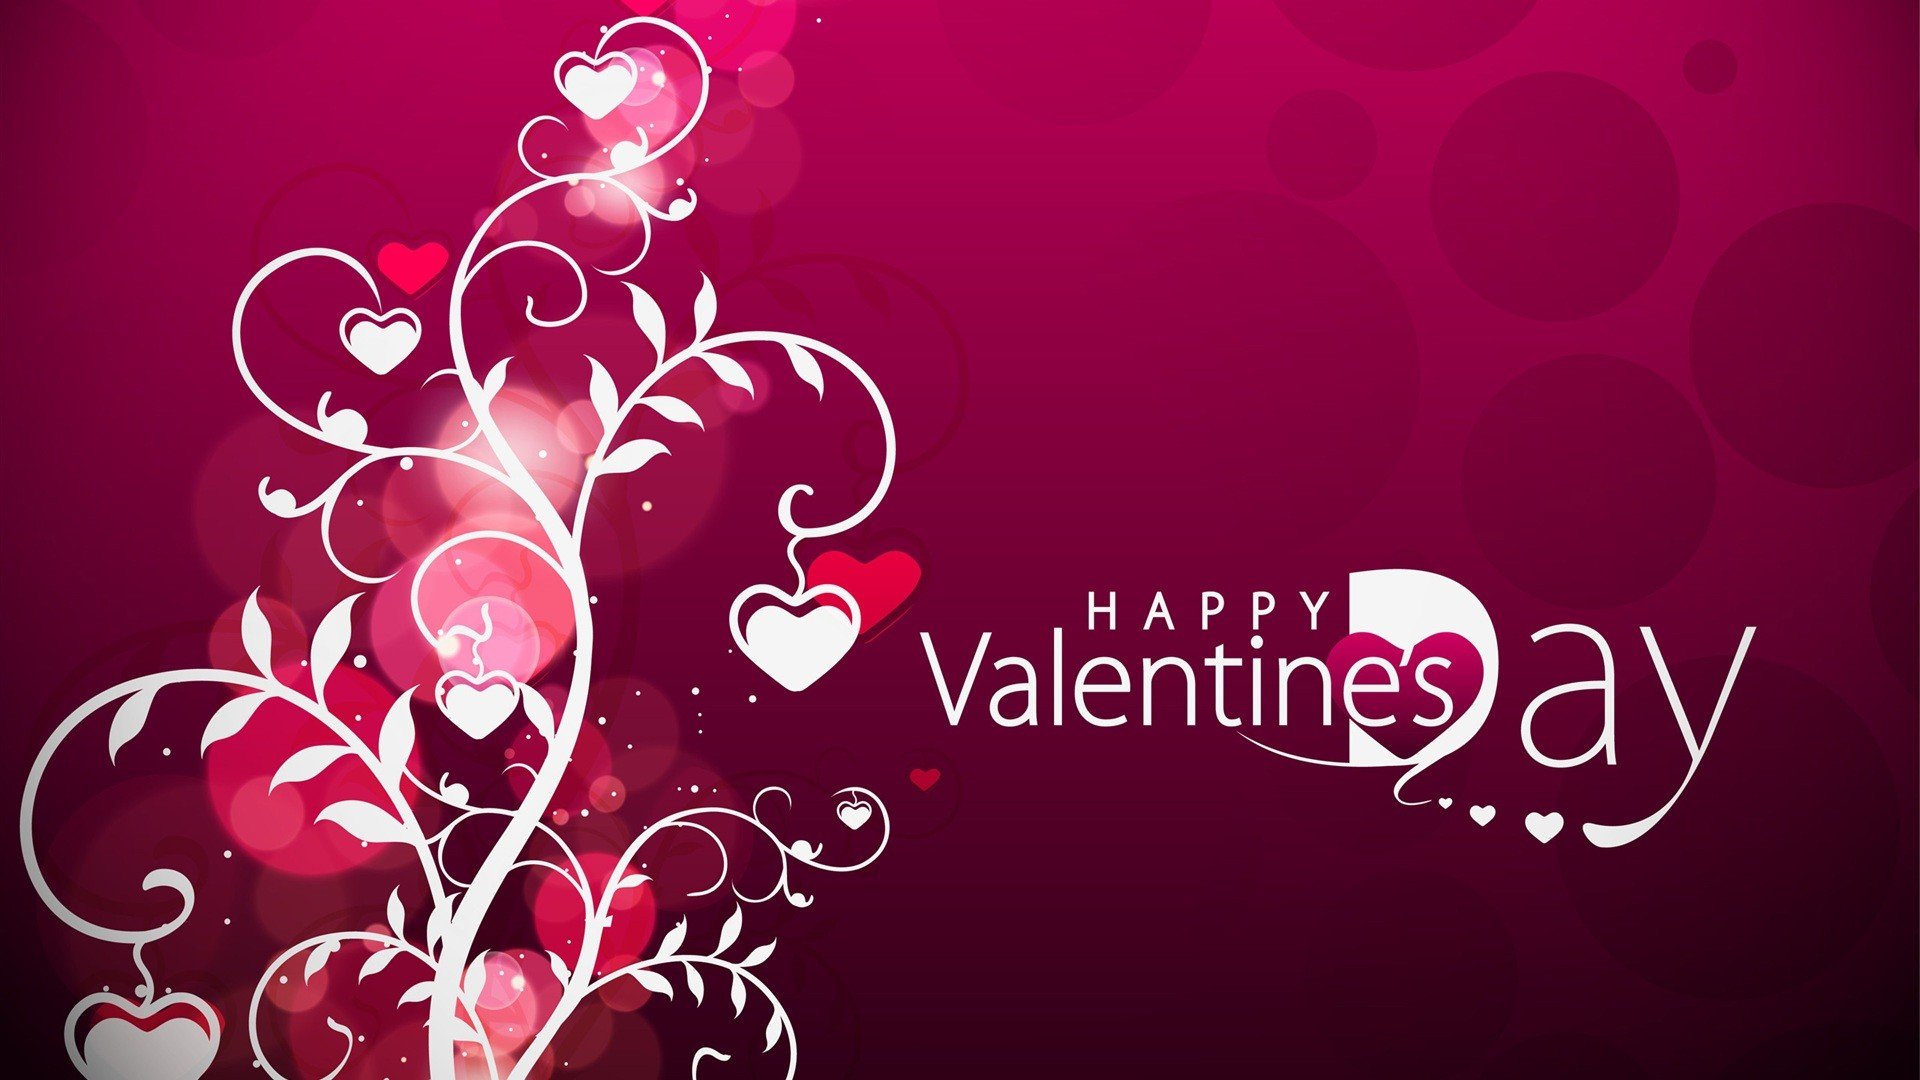 Happy Valentines Day Wallpaper 2017 Free Download